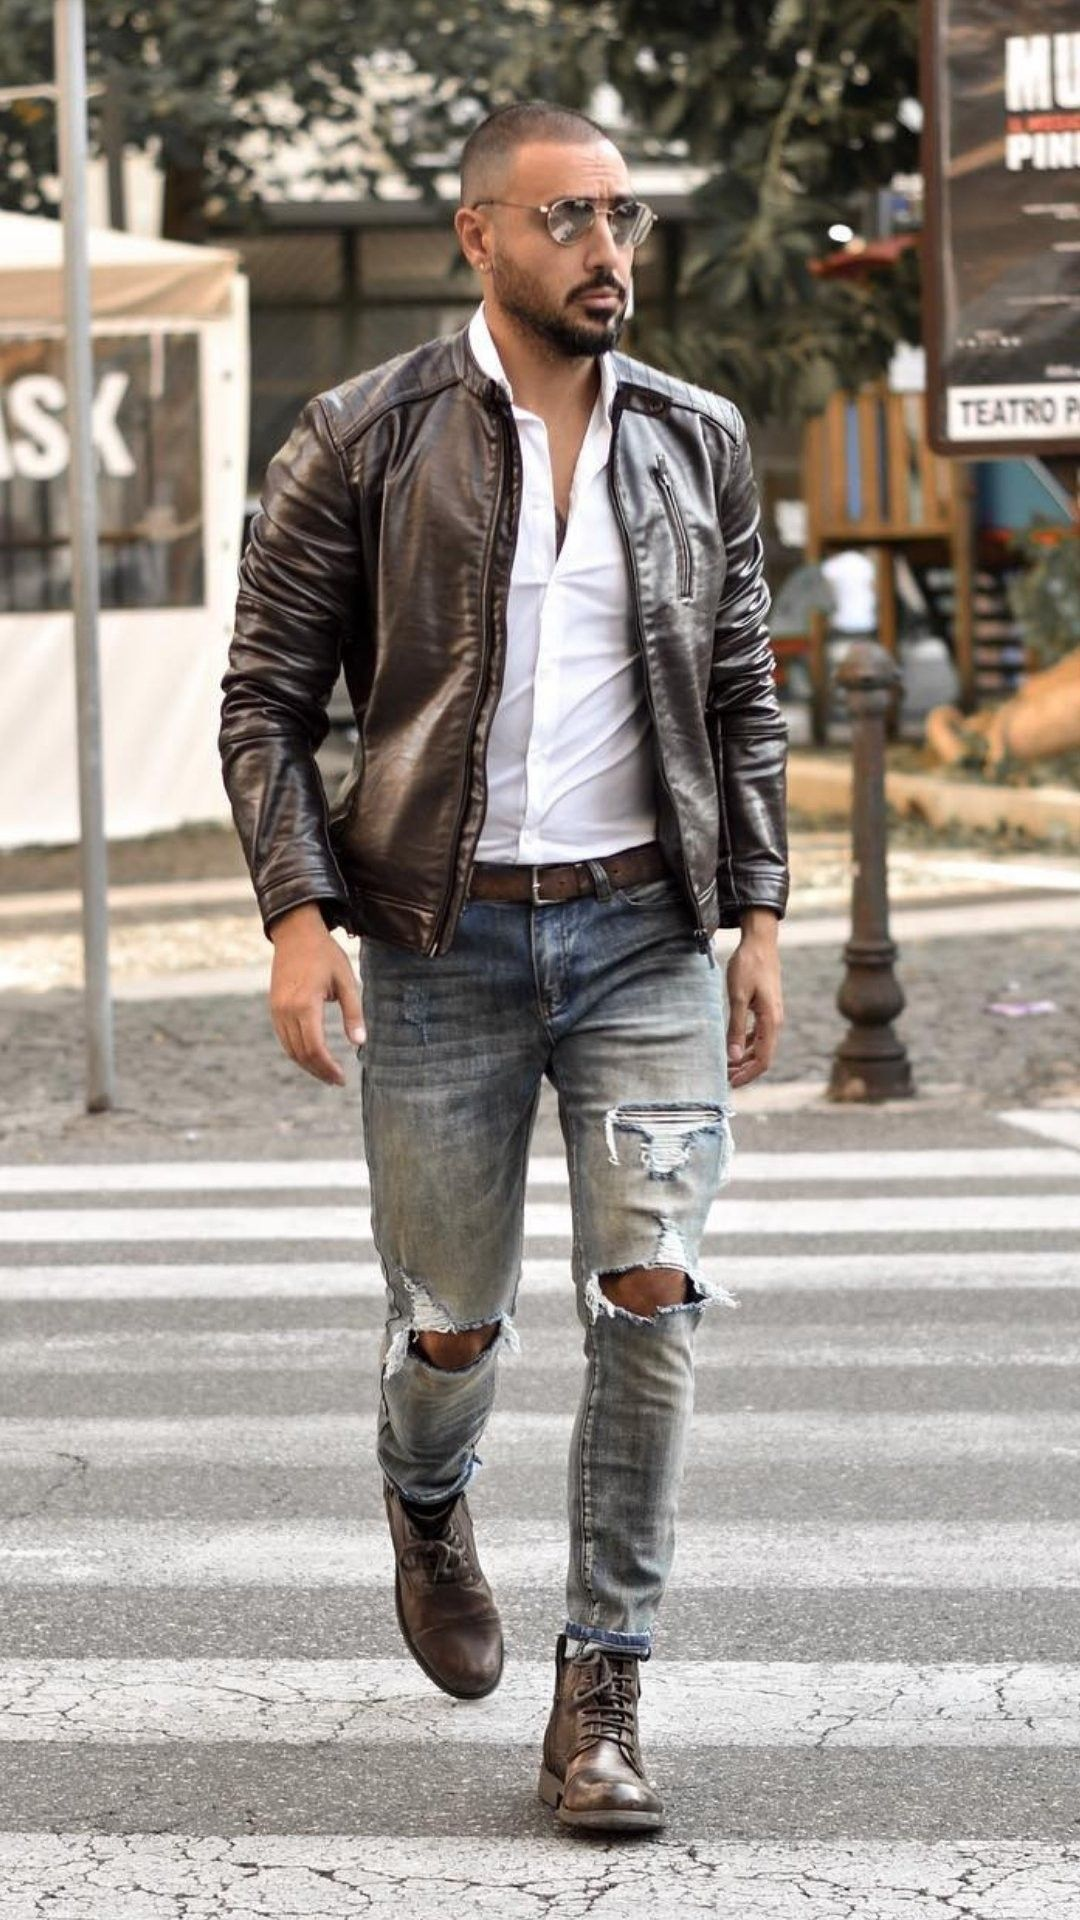 Bald guy with leather jacket and boot for 2018 style